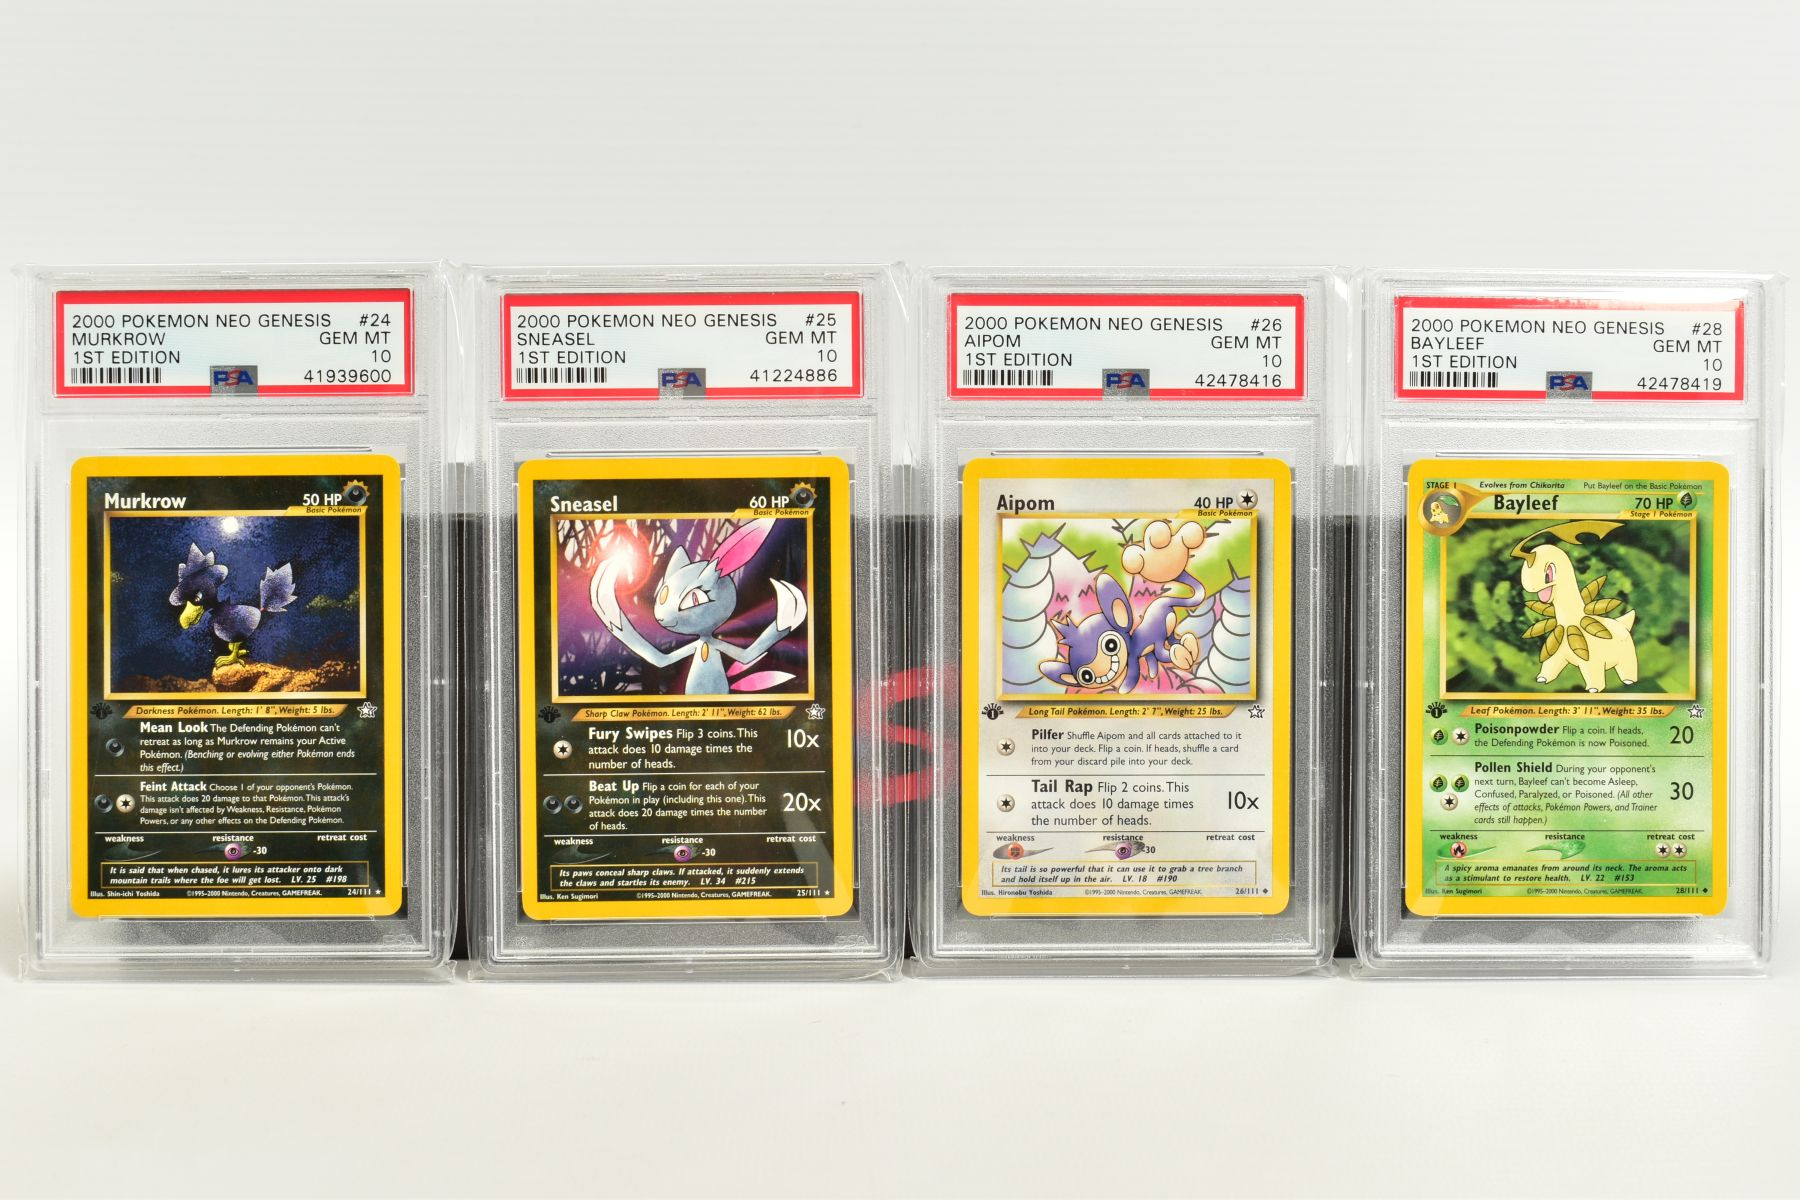 A QUANTITY OF PSA GRADED POKEMON 1ST EDITION NEO GENESIS SET CARDS, all are graded GEM MINT 10 and - Image 3 of 24